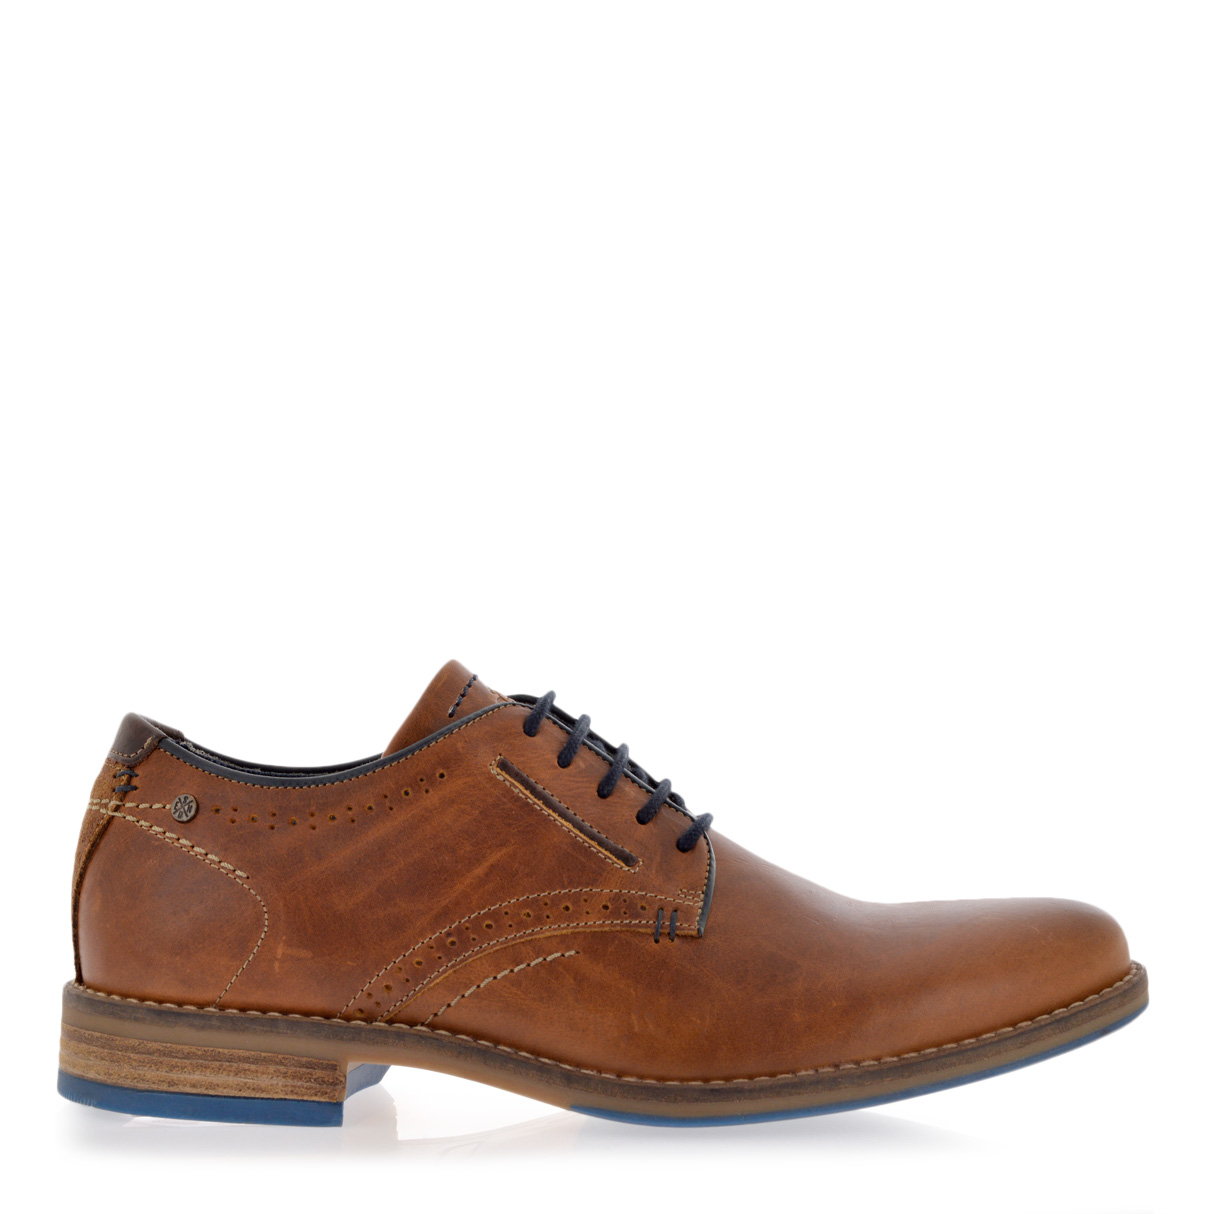 LACE-UP SHOES σχέδιο: G57752631 outlet   ανδρικα   lace up shoes